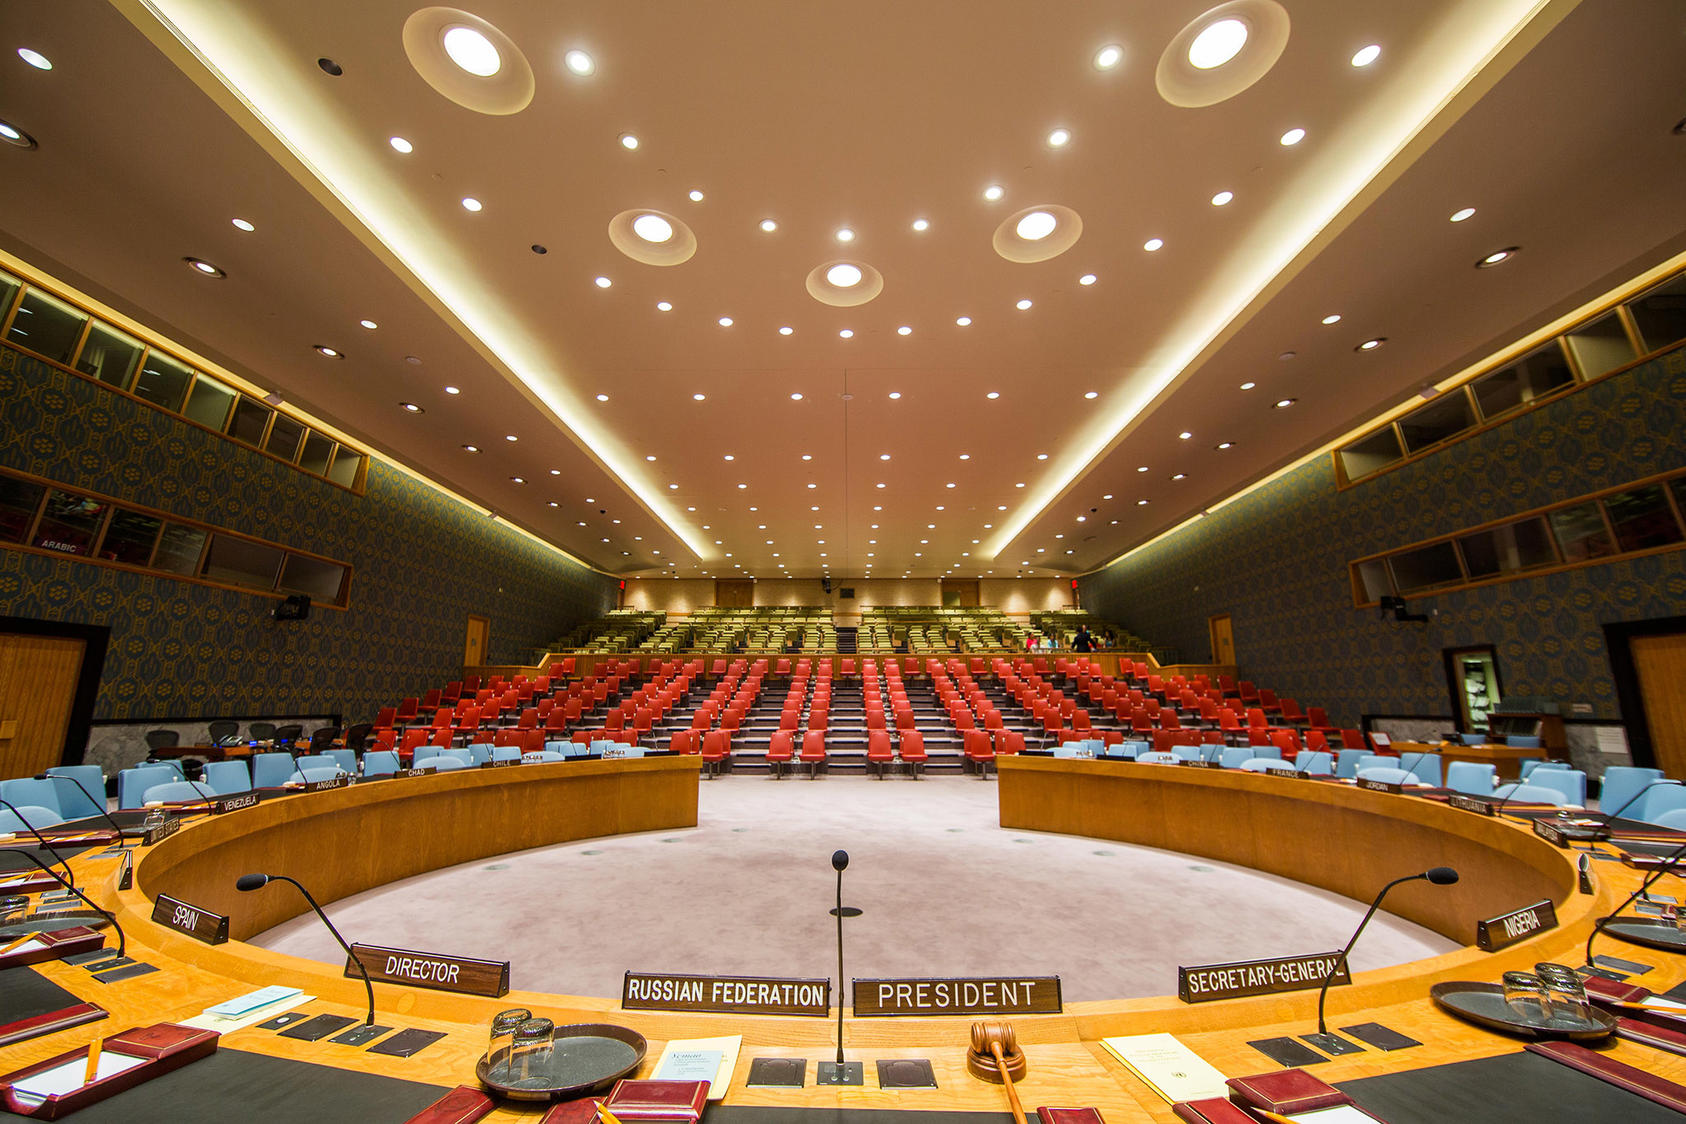 The Security Council Chamber at the United Nations headquarters, in Manhattan, Sept. 1, 2015. (Piotr Redlinski/The New York Times)